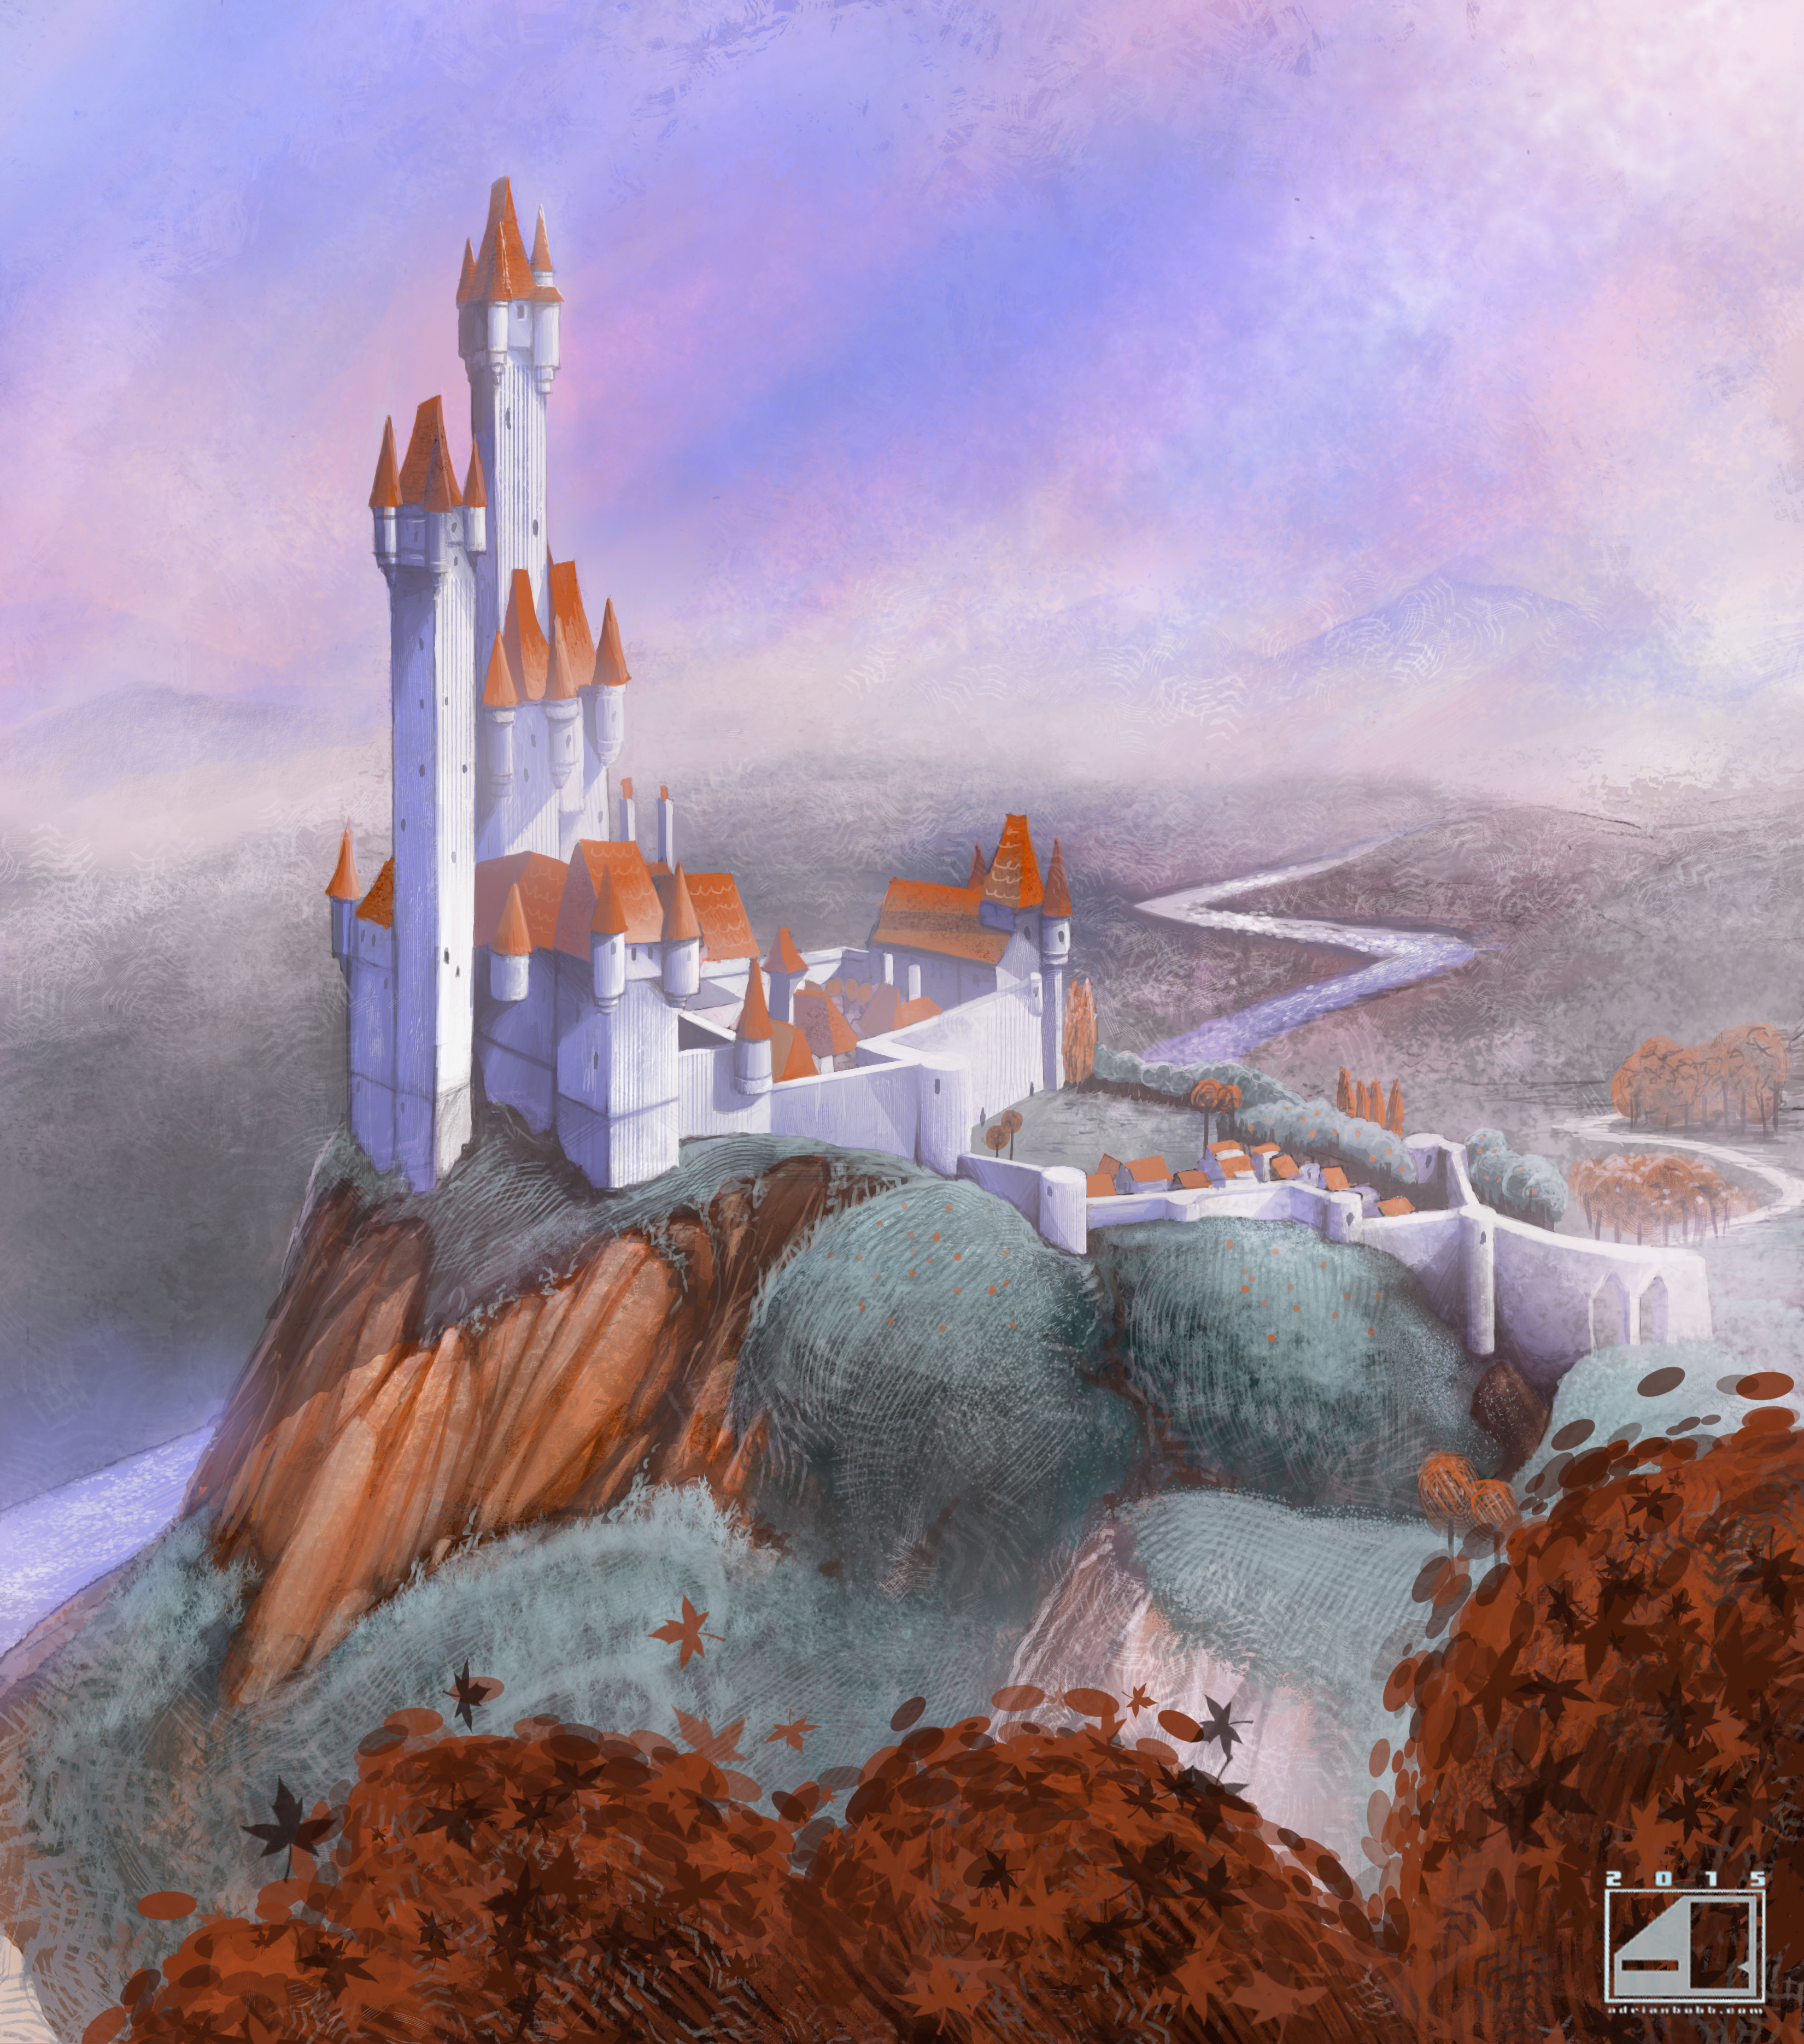 """A concept for an indie CGI """"Storybook"""" movie."""